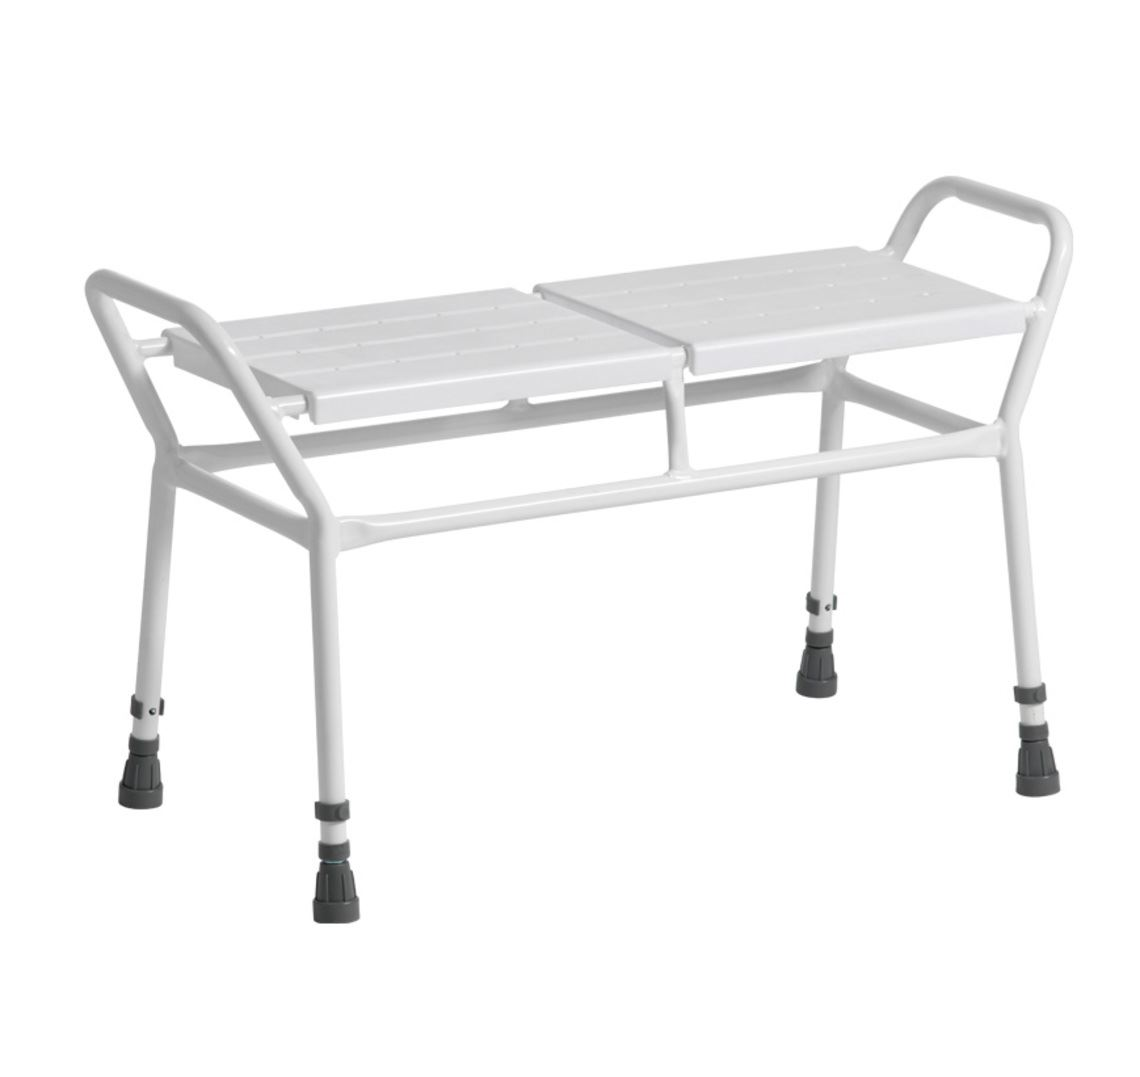 Picture of Bosworth Shower Bench -  Heavy Duty